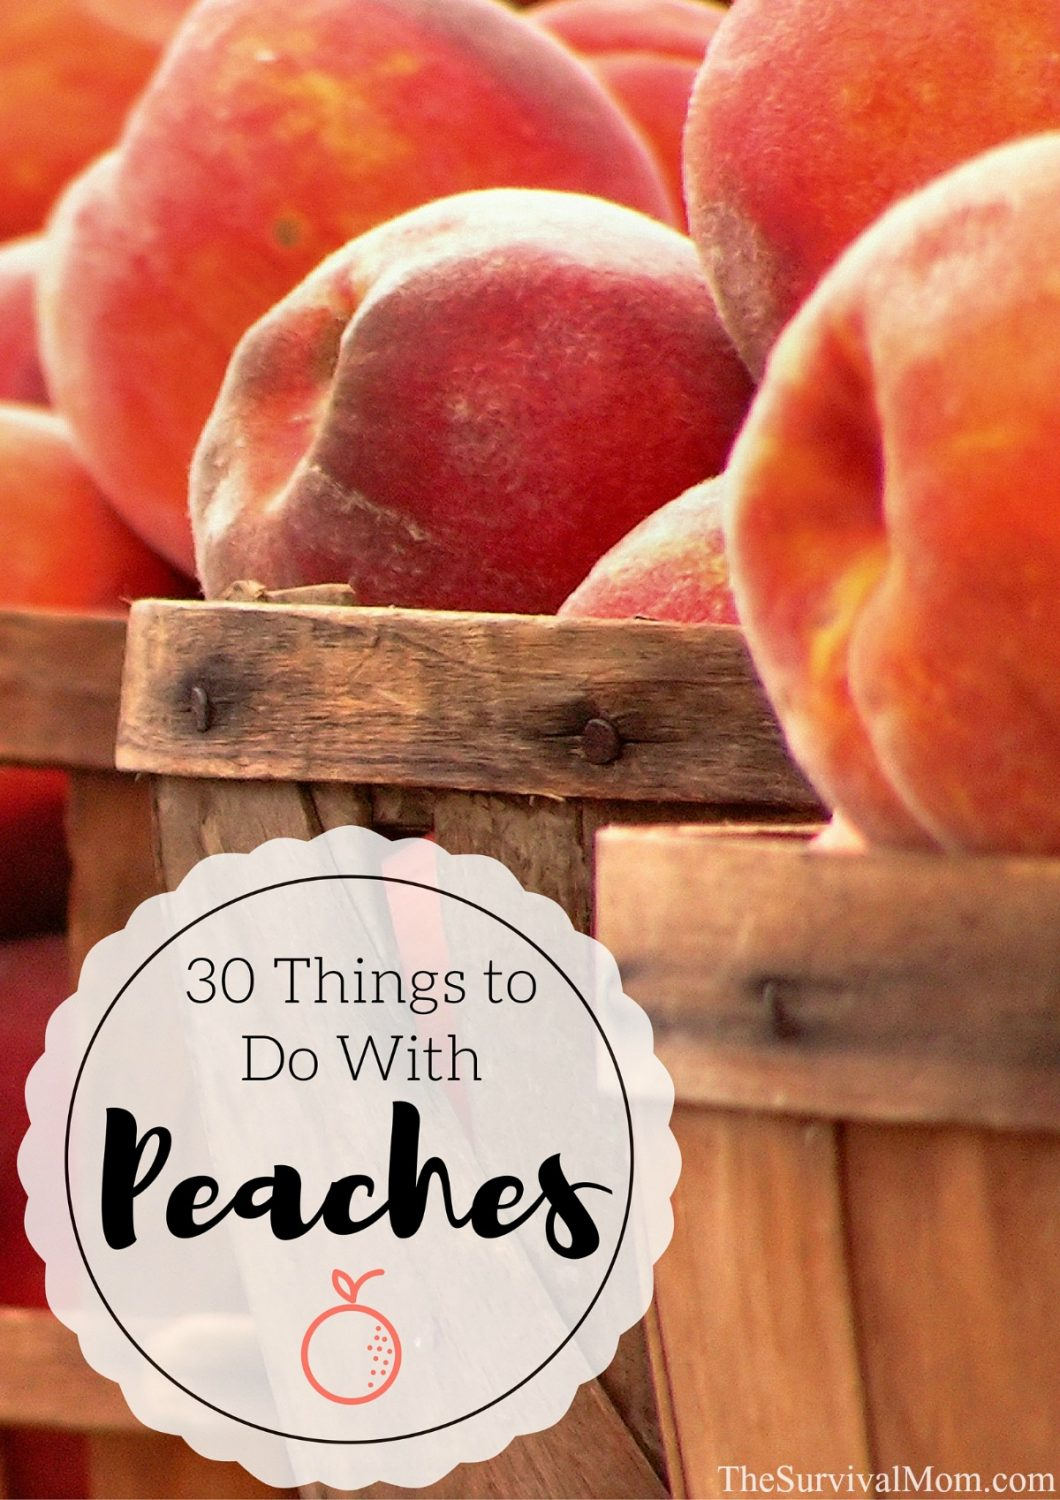 Things to Do With Peaches, recipes for peaches, what to do with peaches, peach recipes